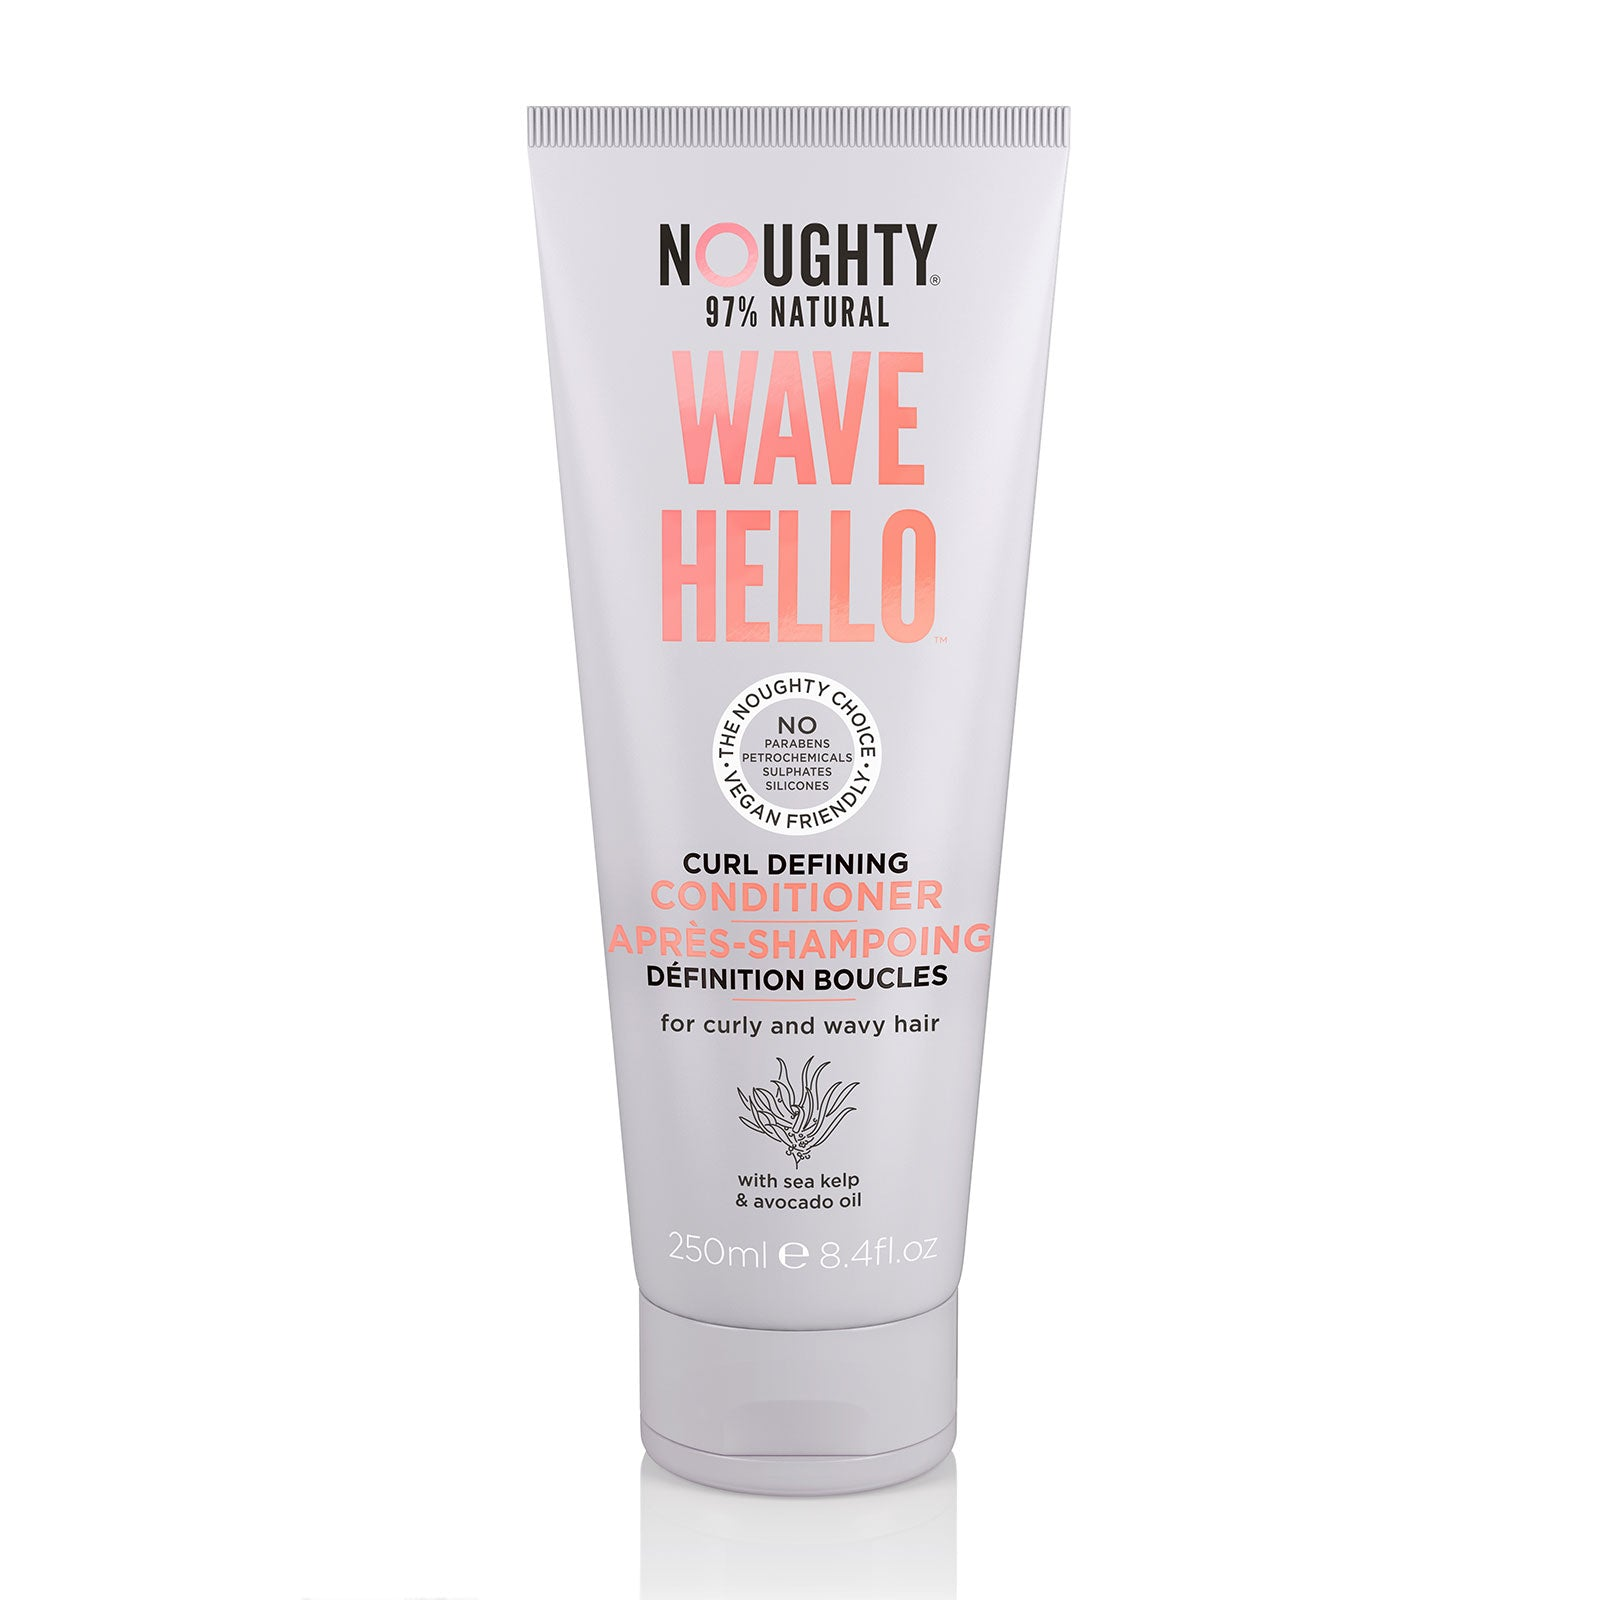 Noughty Wave Hello Curl Defining Conditioner 250ml